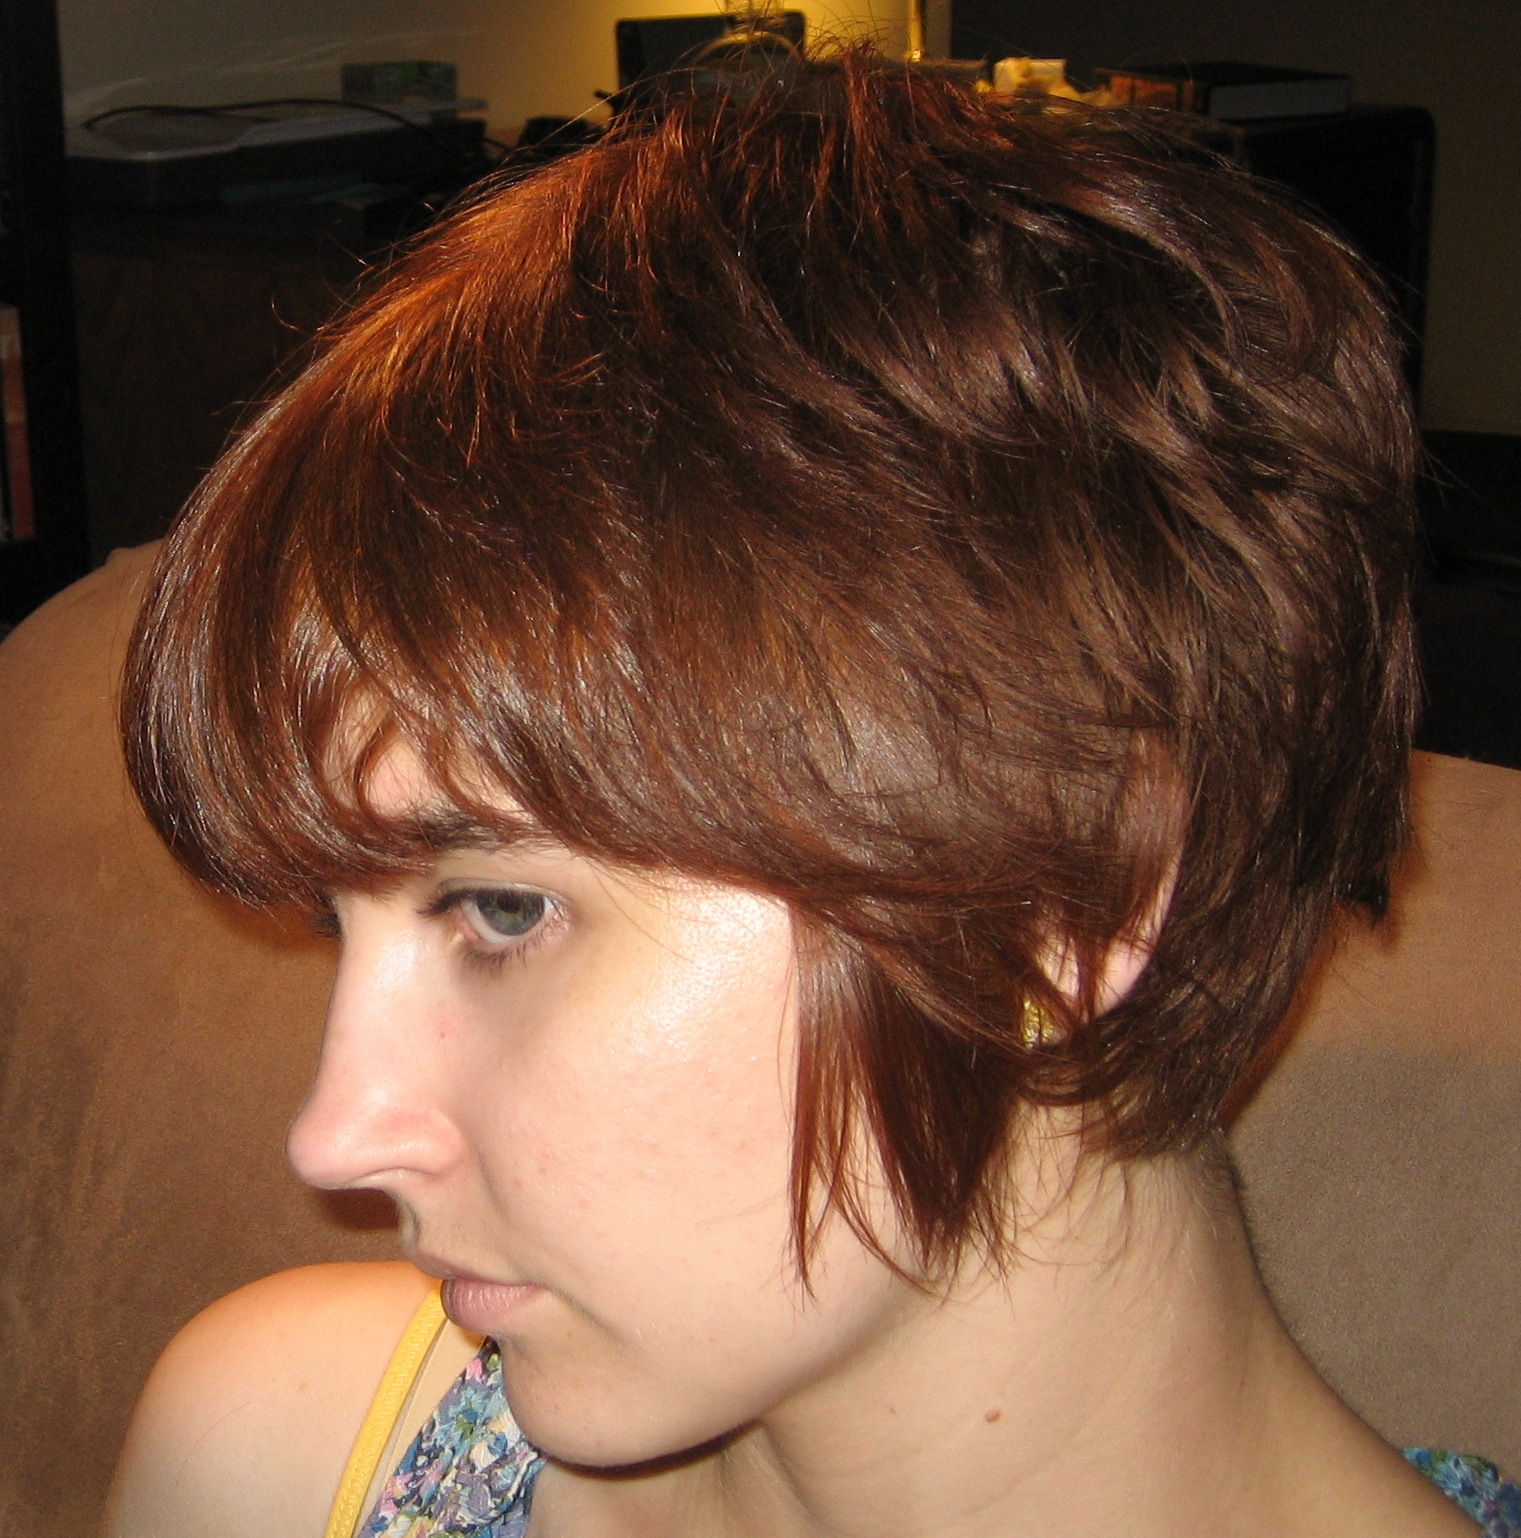 Download image Hairstyles While Growing Out Short Hair PC, Android ...